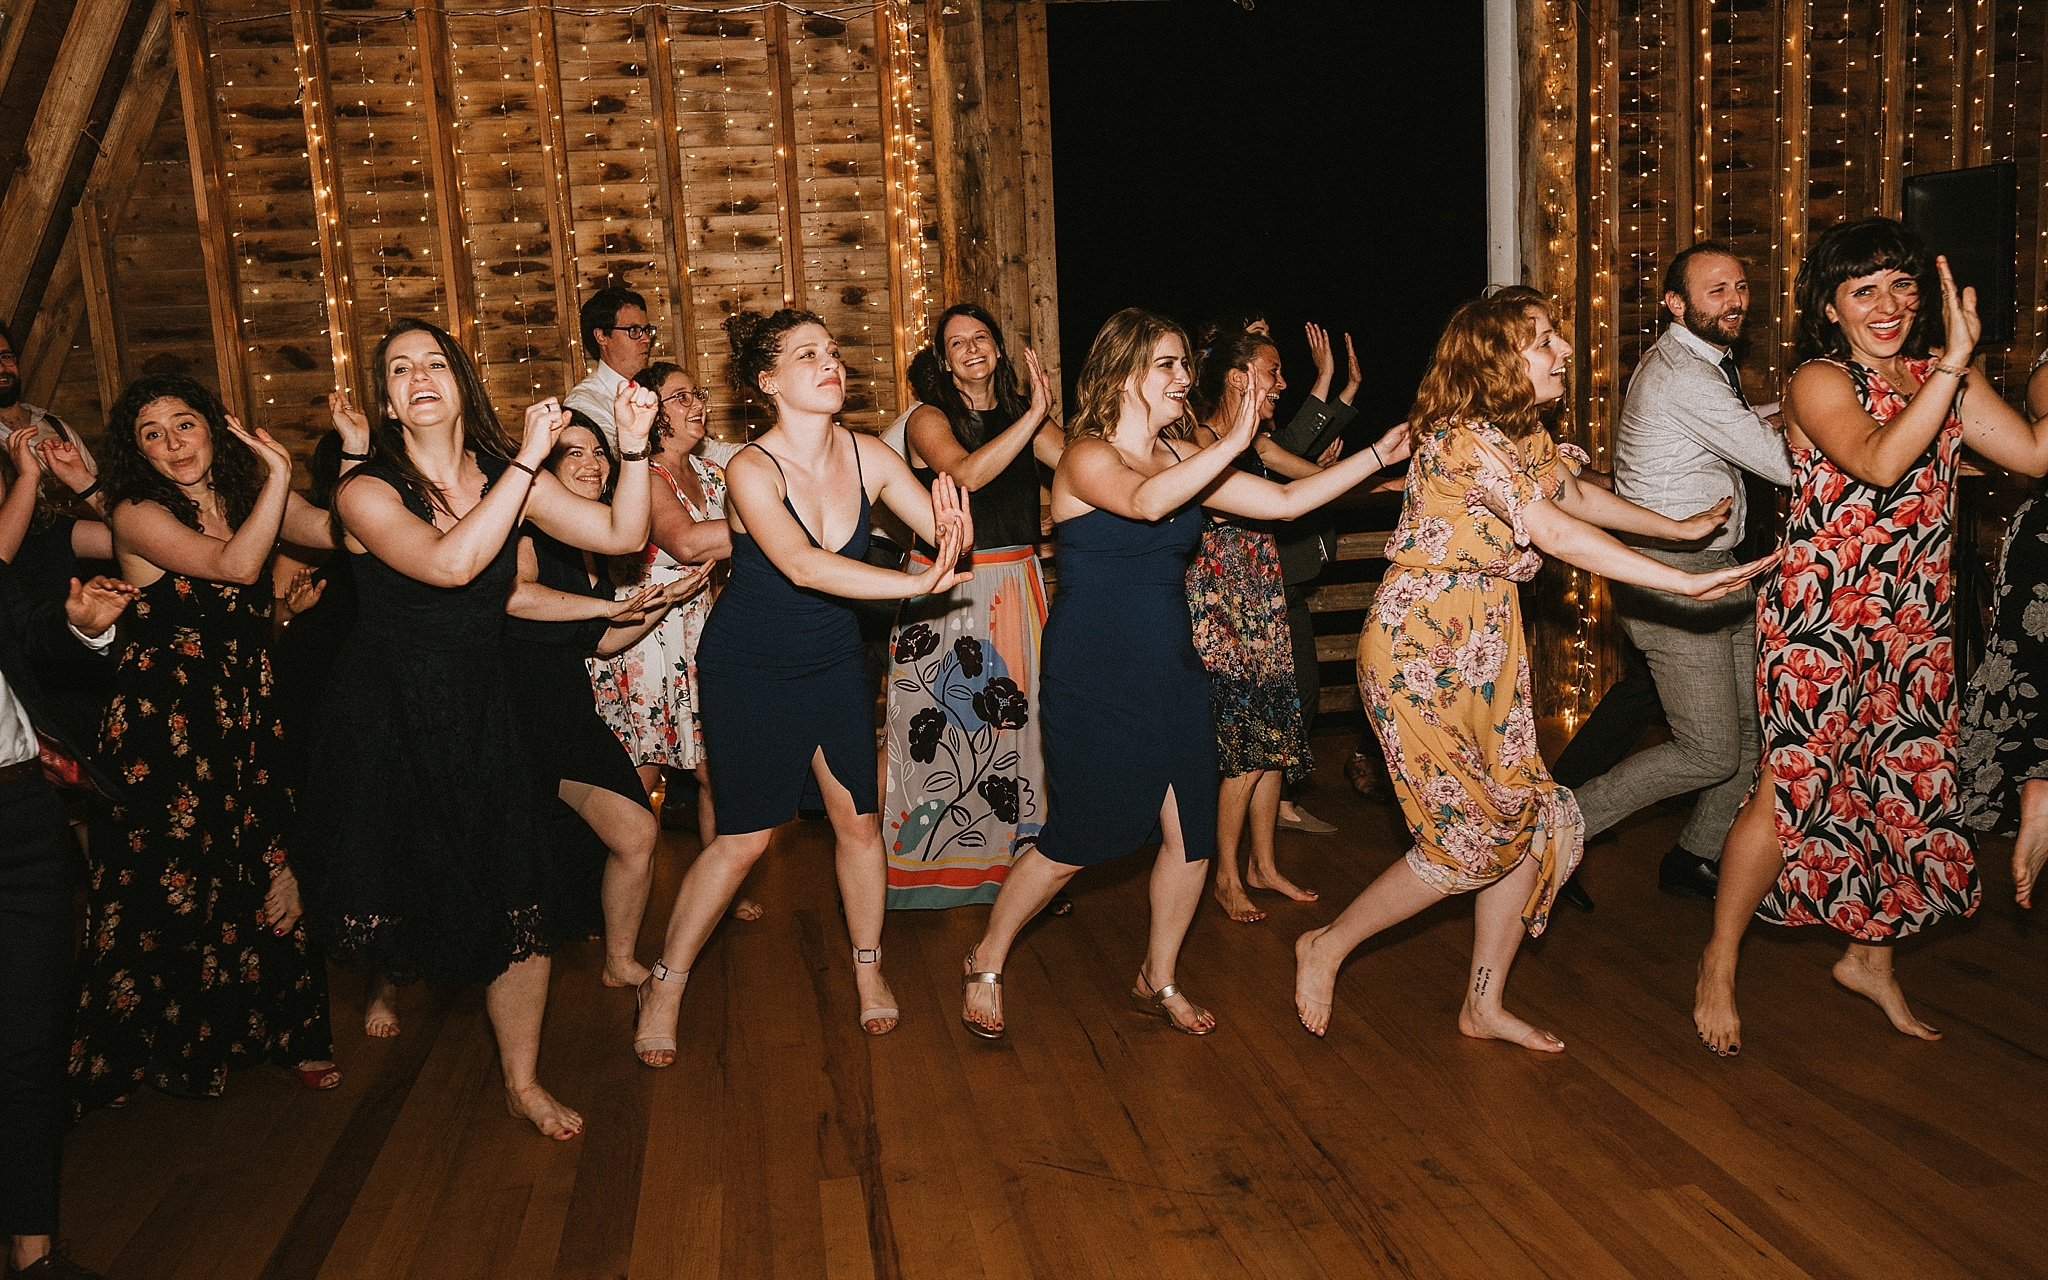 catskills_boho_wedding_2803.jpg